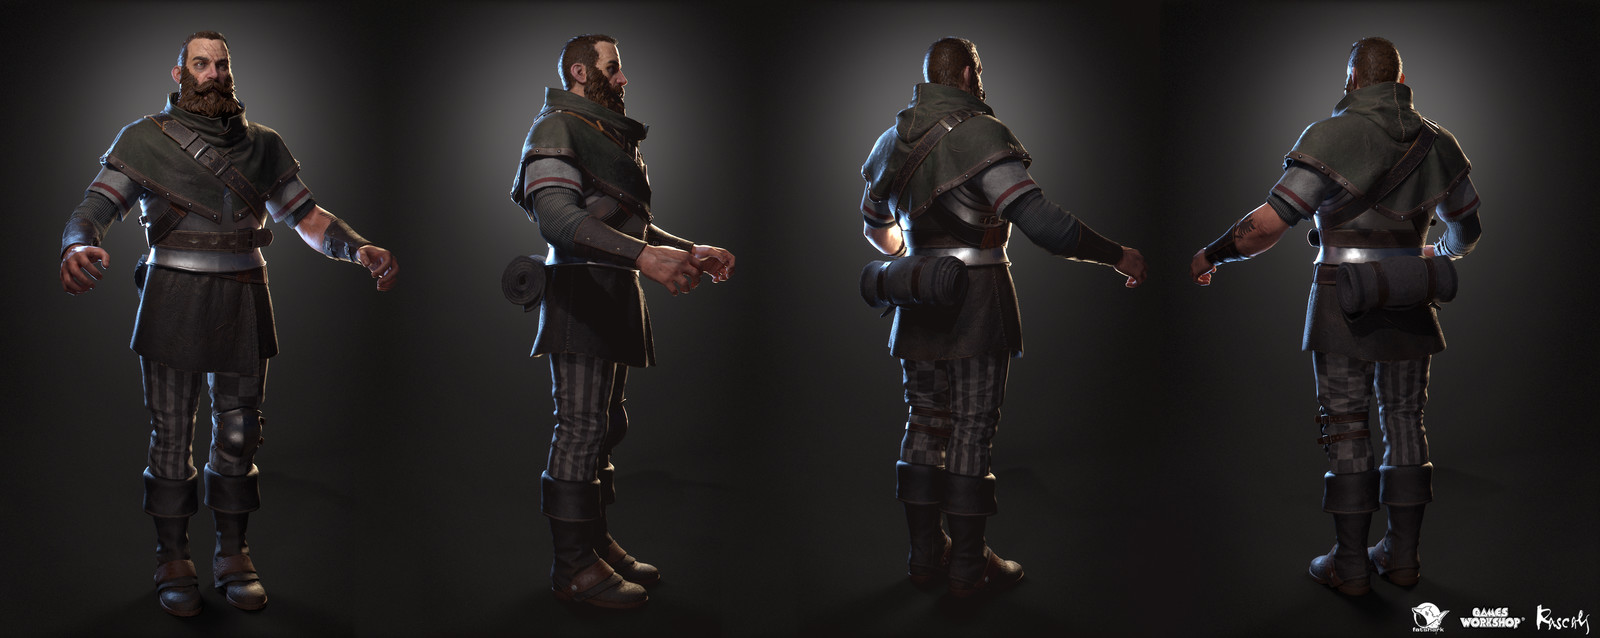 Kruber is one of the ever-bickering ensamble of ragtag heroes that fight against the hordes of the rat-like Skaven and their sinister allies from the Chaos faction.